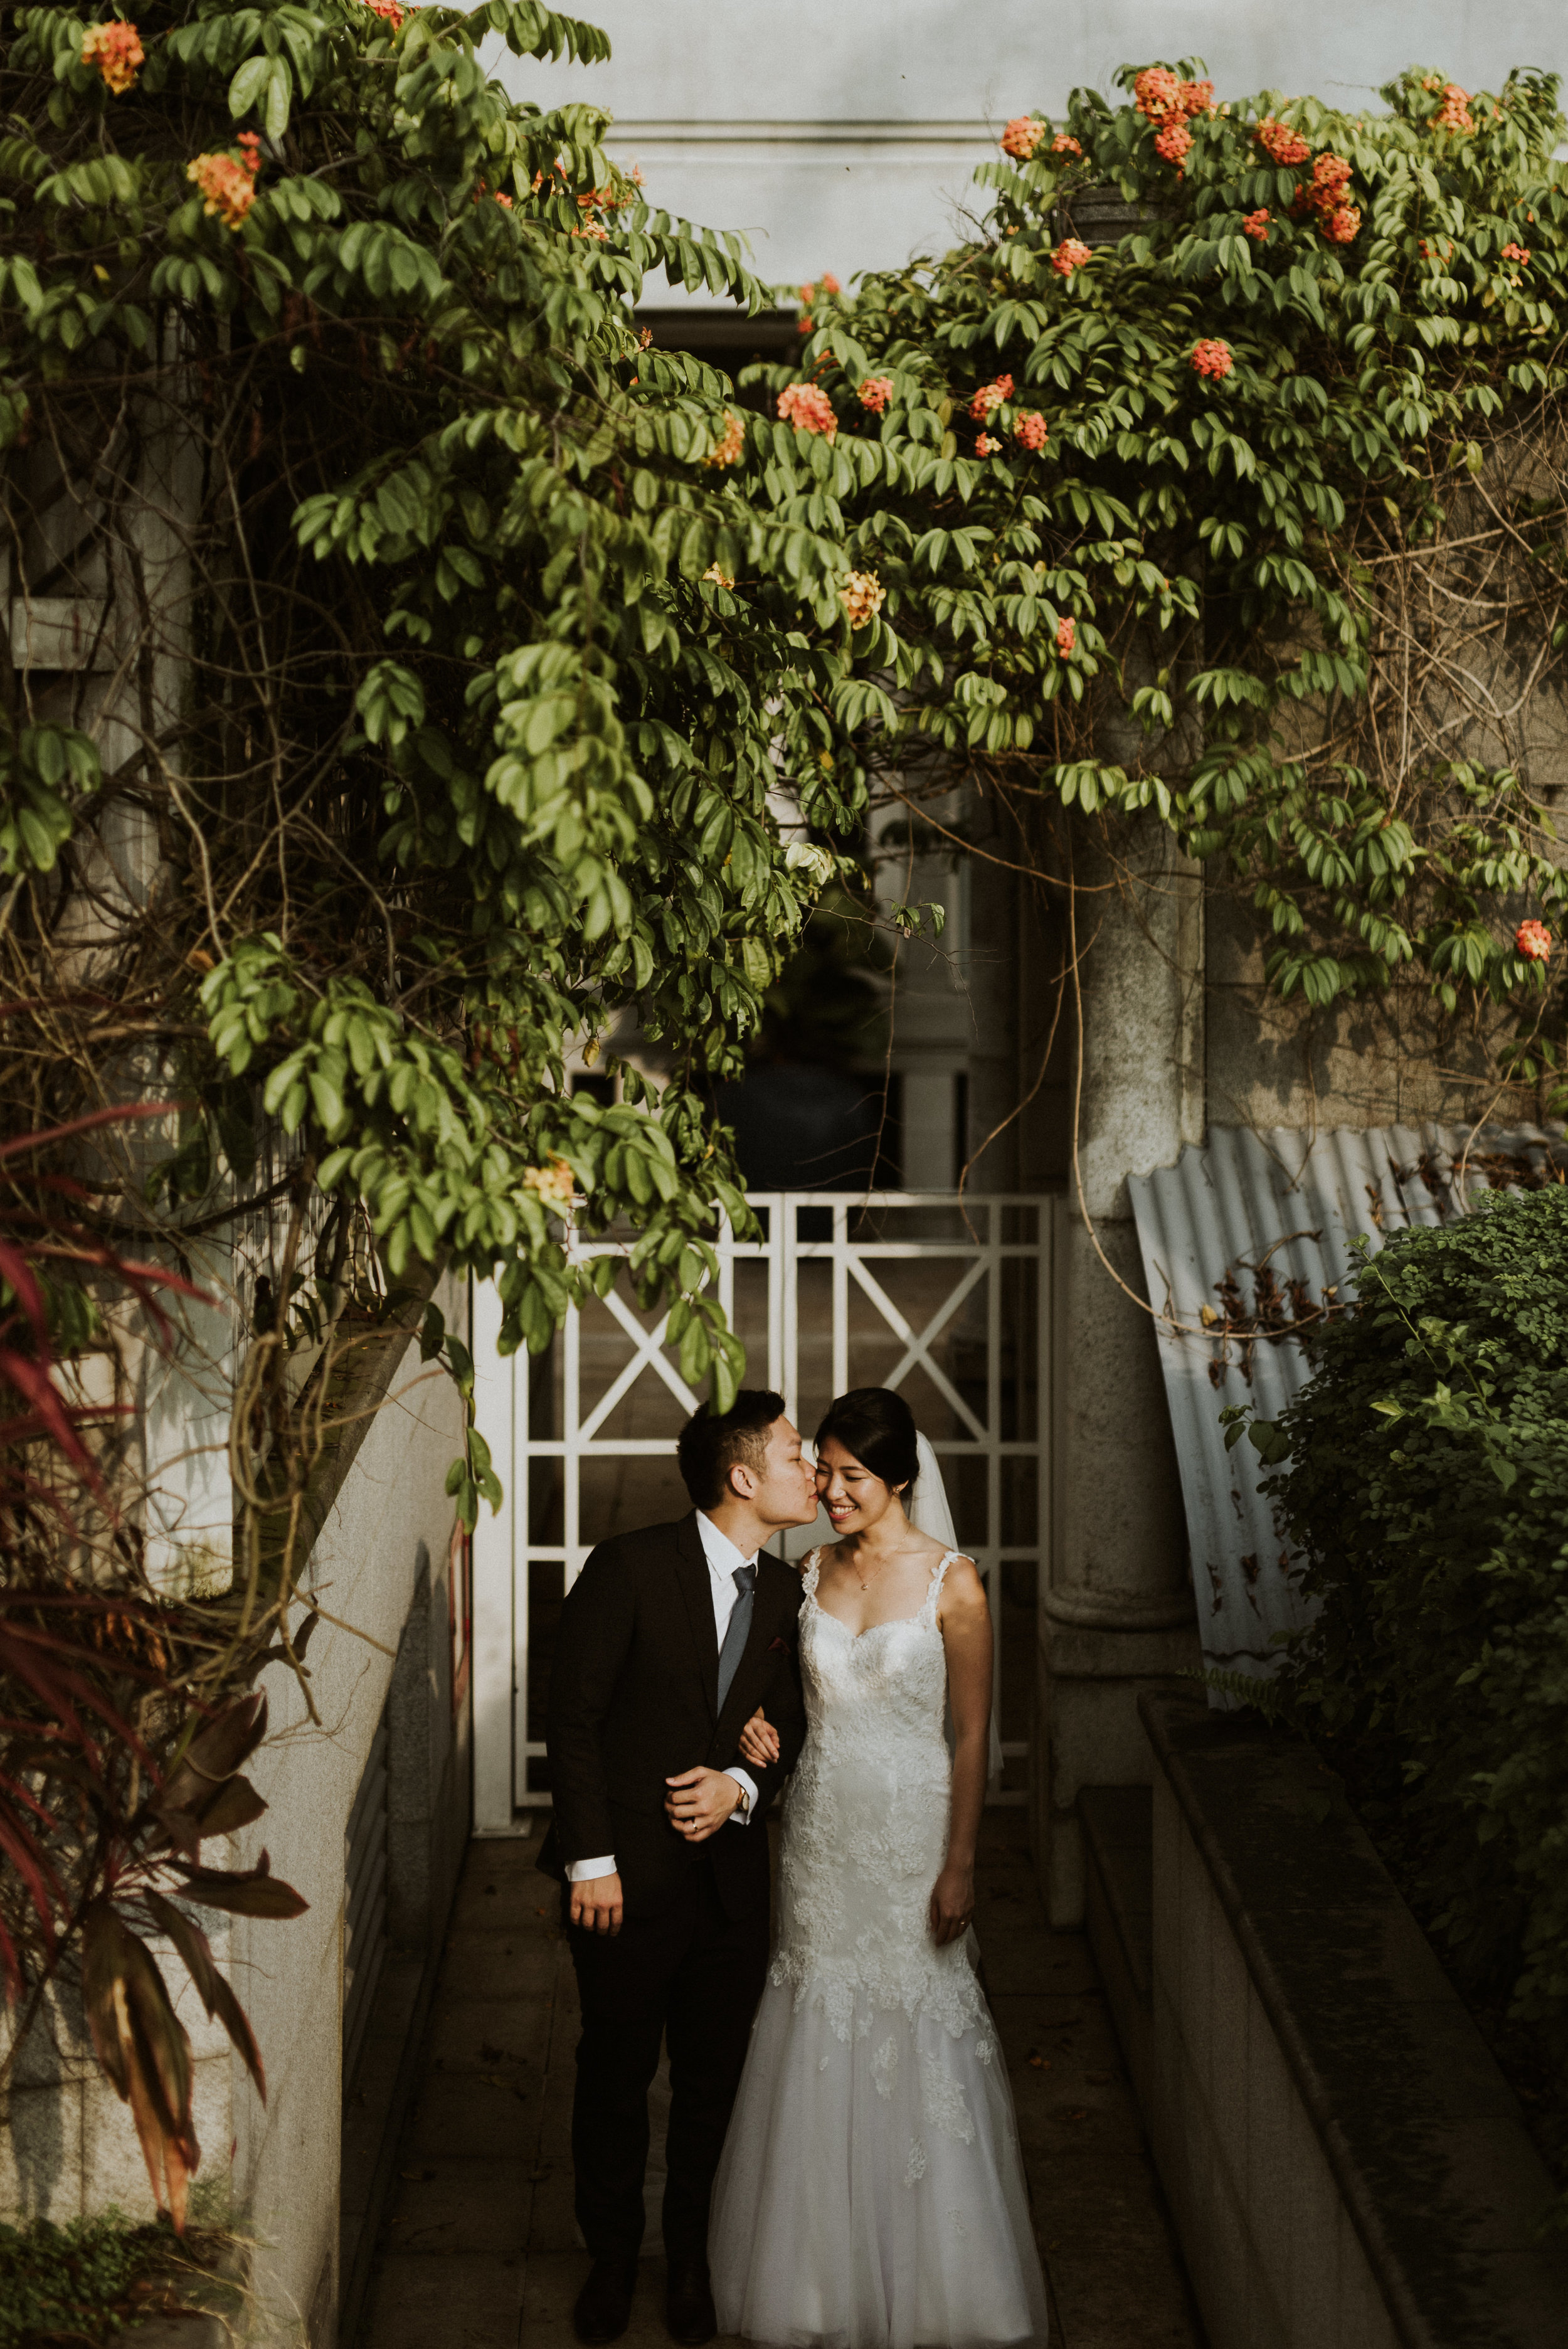 Matilda and Wayne's Pre-wedding Shoot by The Beautiful Moment Photography